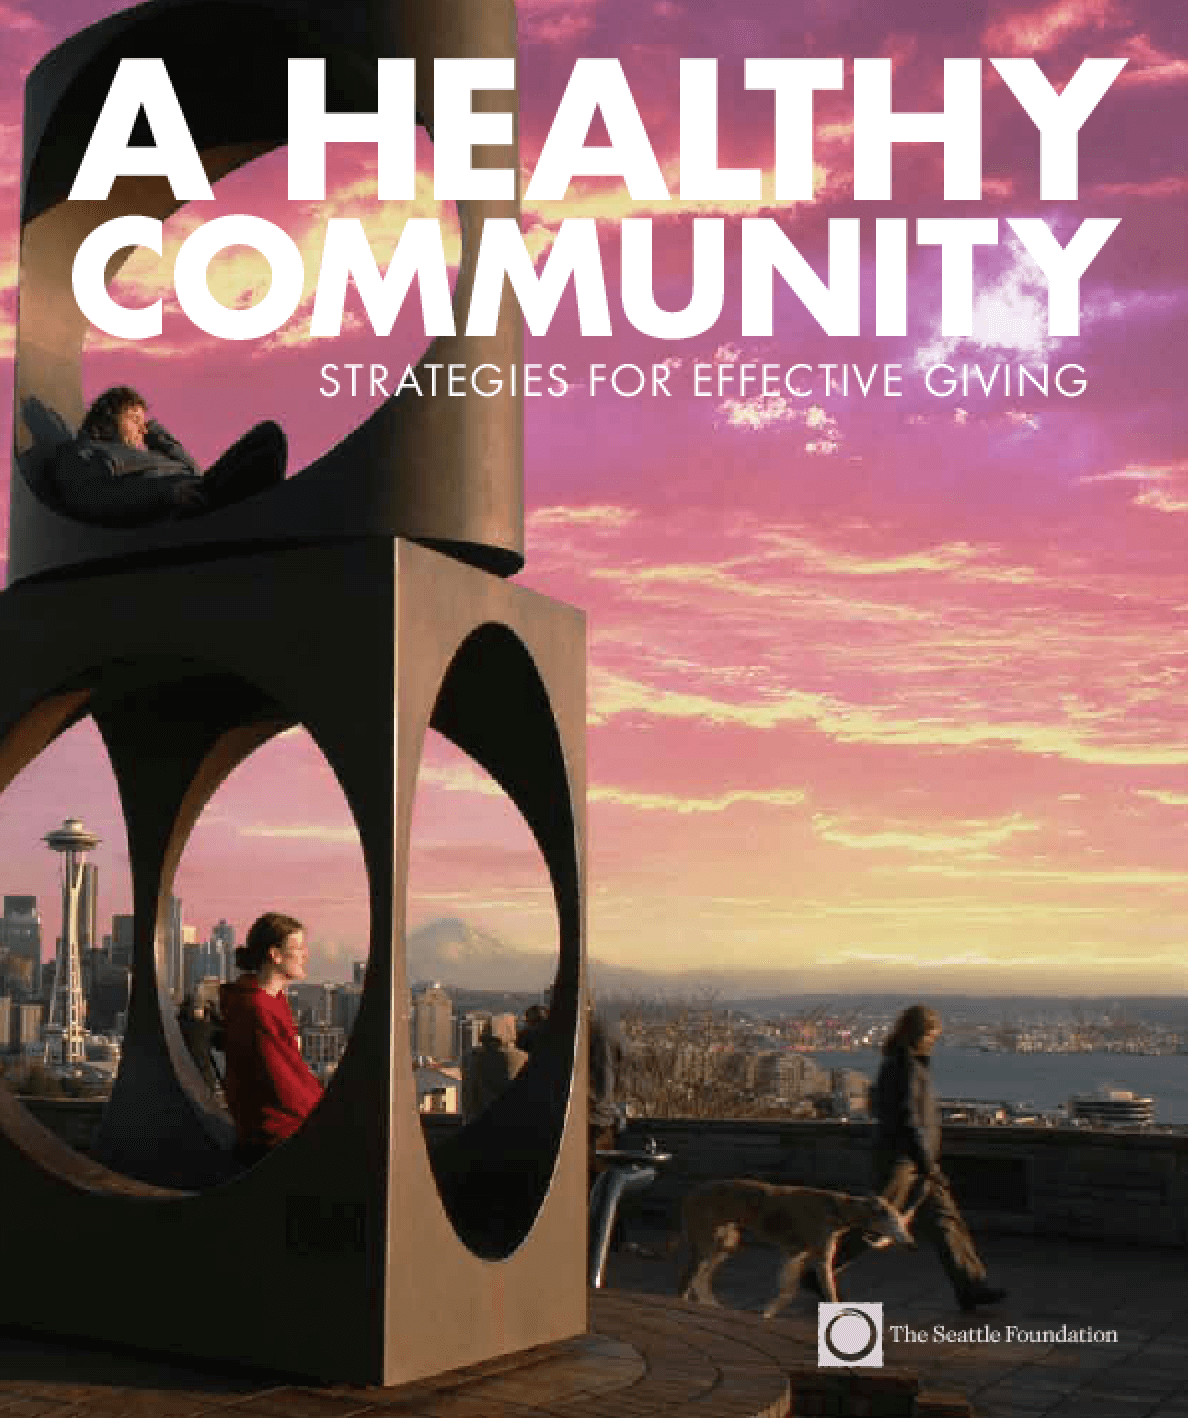 A Healthy Community: Strategies for Effective Giving